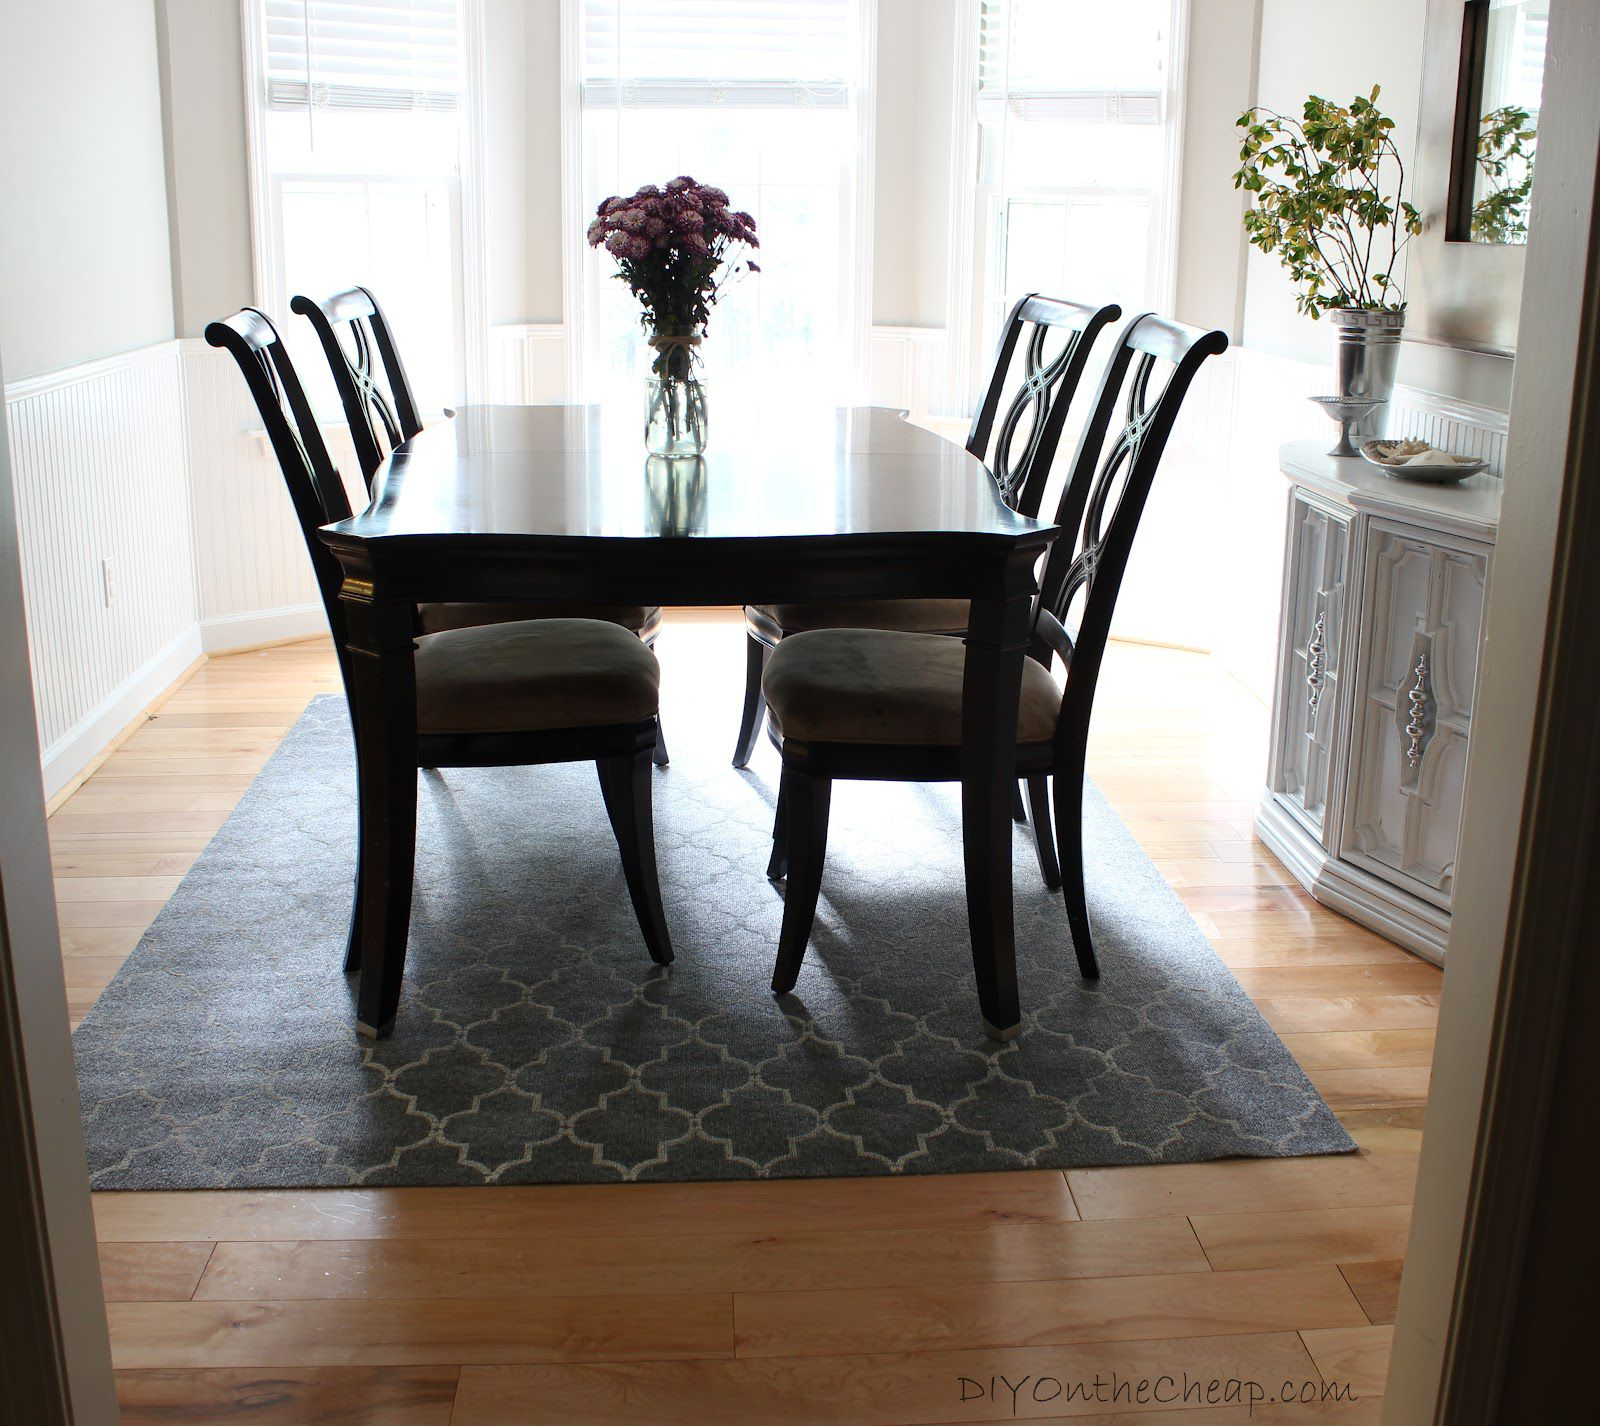 Kitchen Table On Rug: How To Create Perfect Modern Dining Room